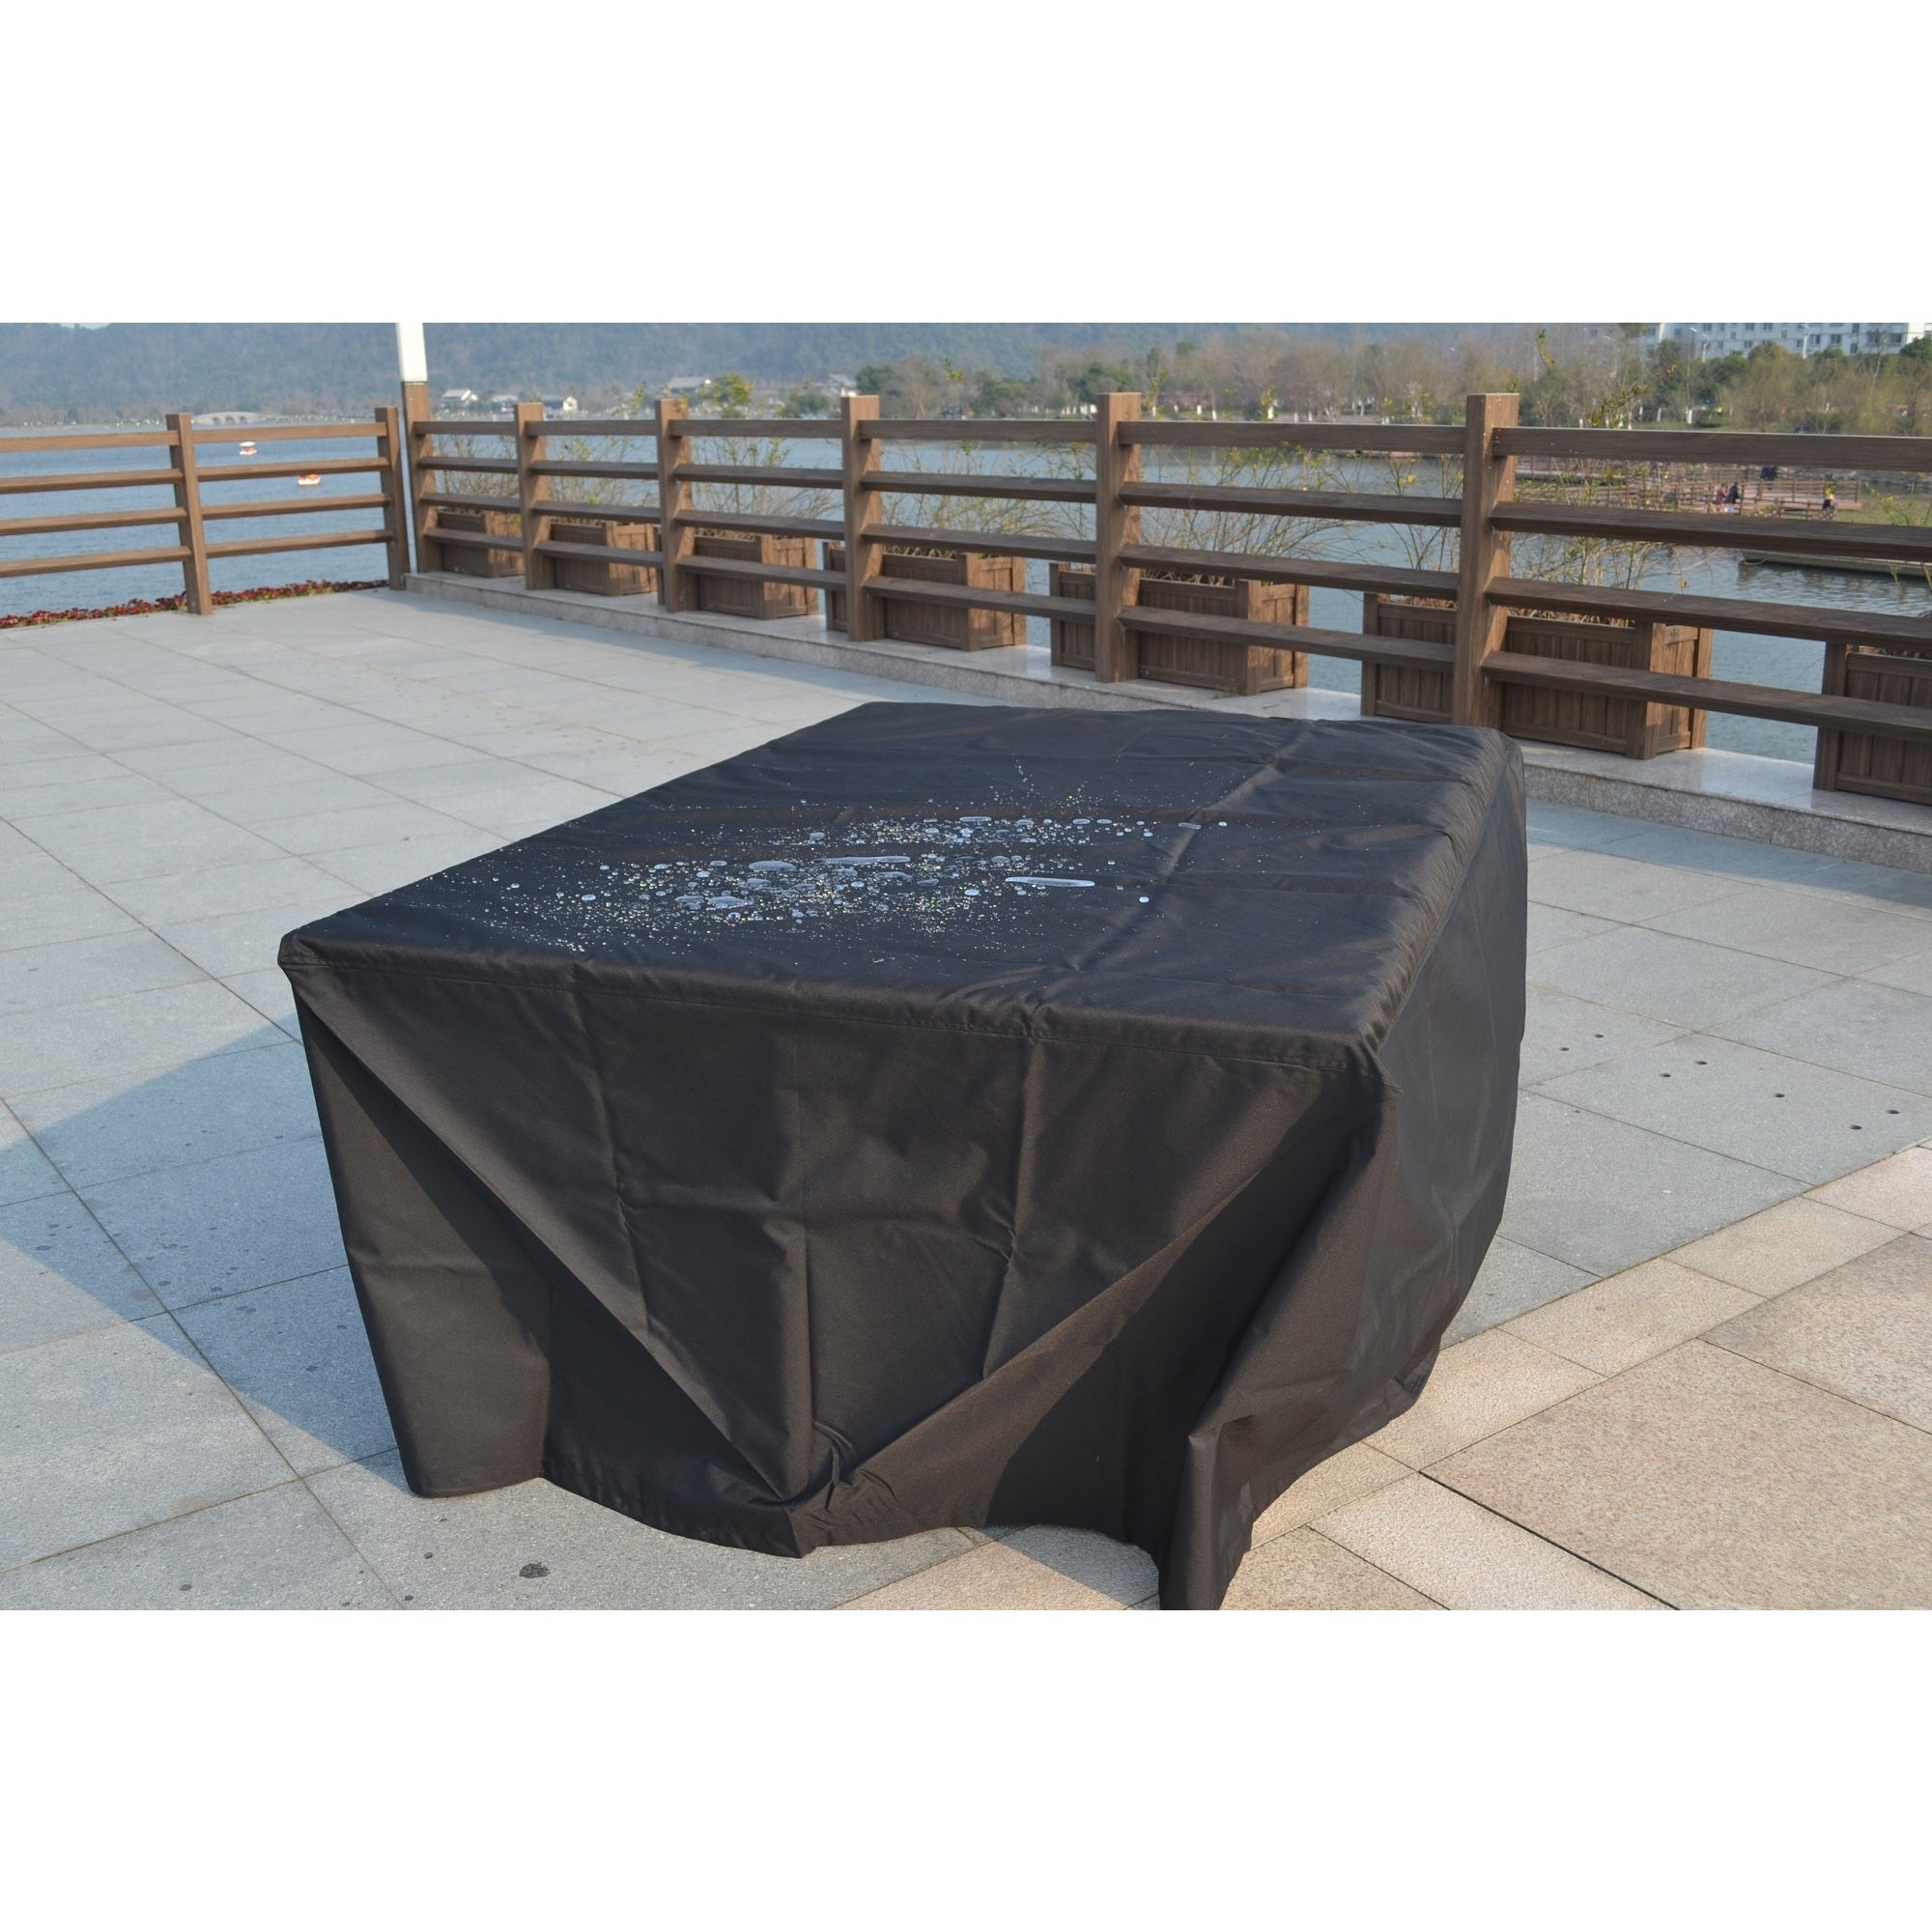 Cube Garden Furniture Set Covers Outdoor Rattan Table Chair Heavy Duty RainCover